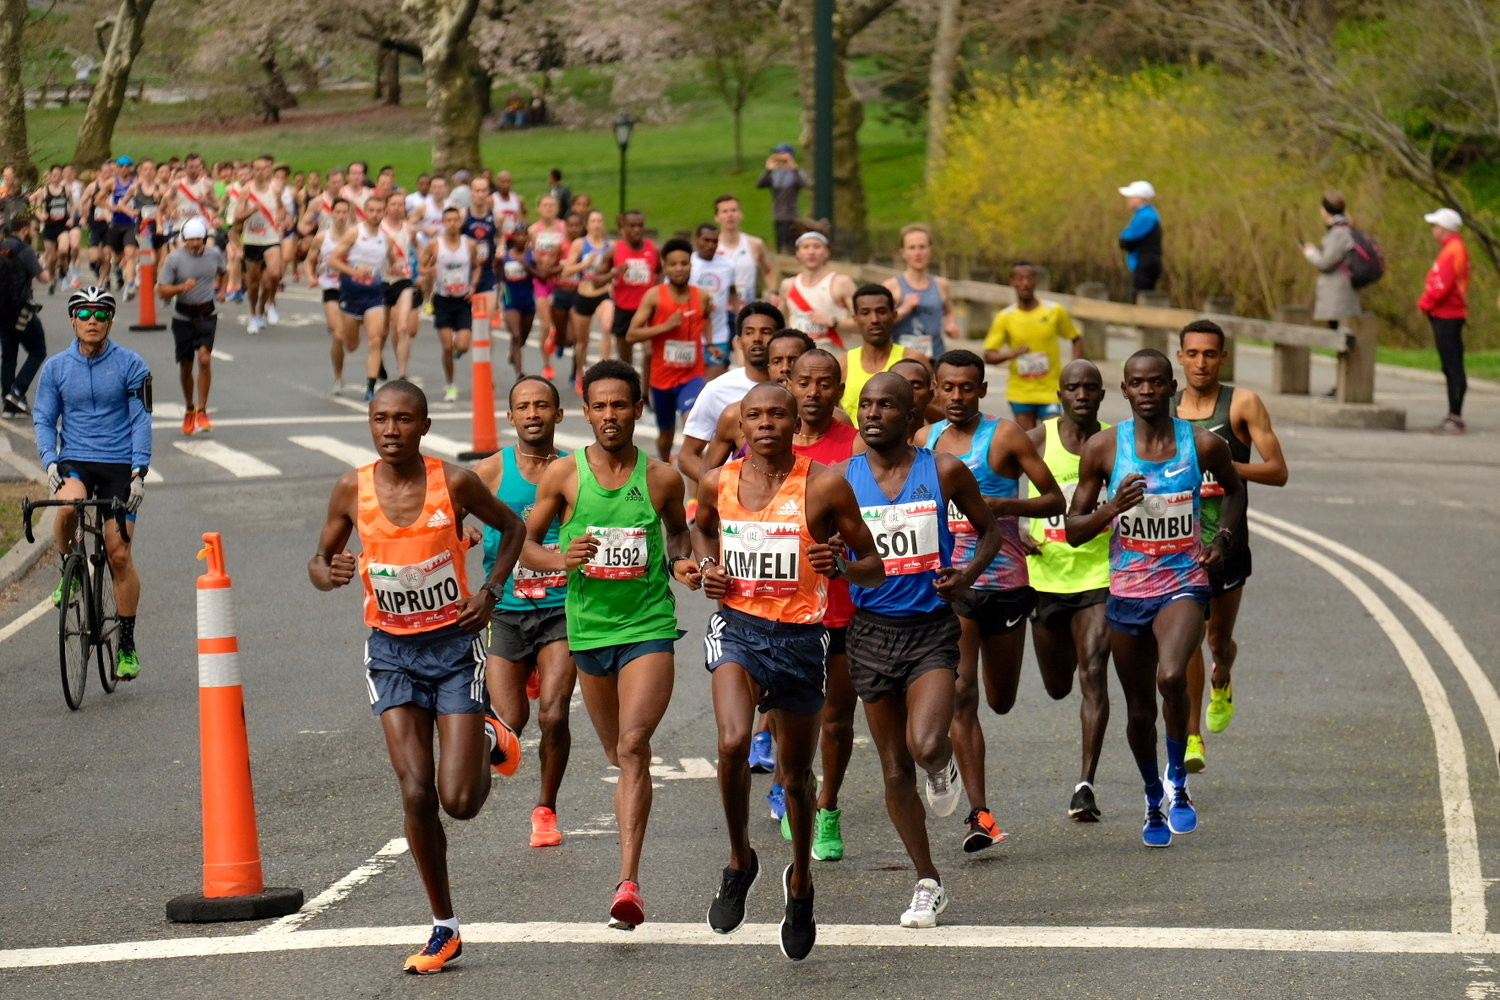 The world's fastest 10k on the roads was run this morning in New York City, Phonex Kipruto clocked 27:08